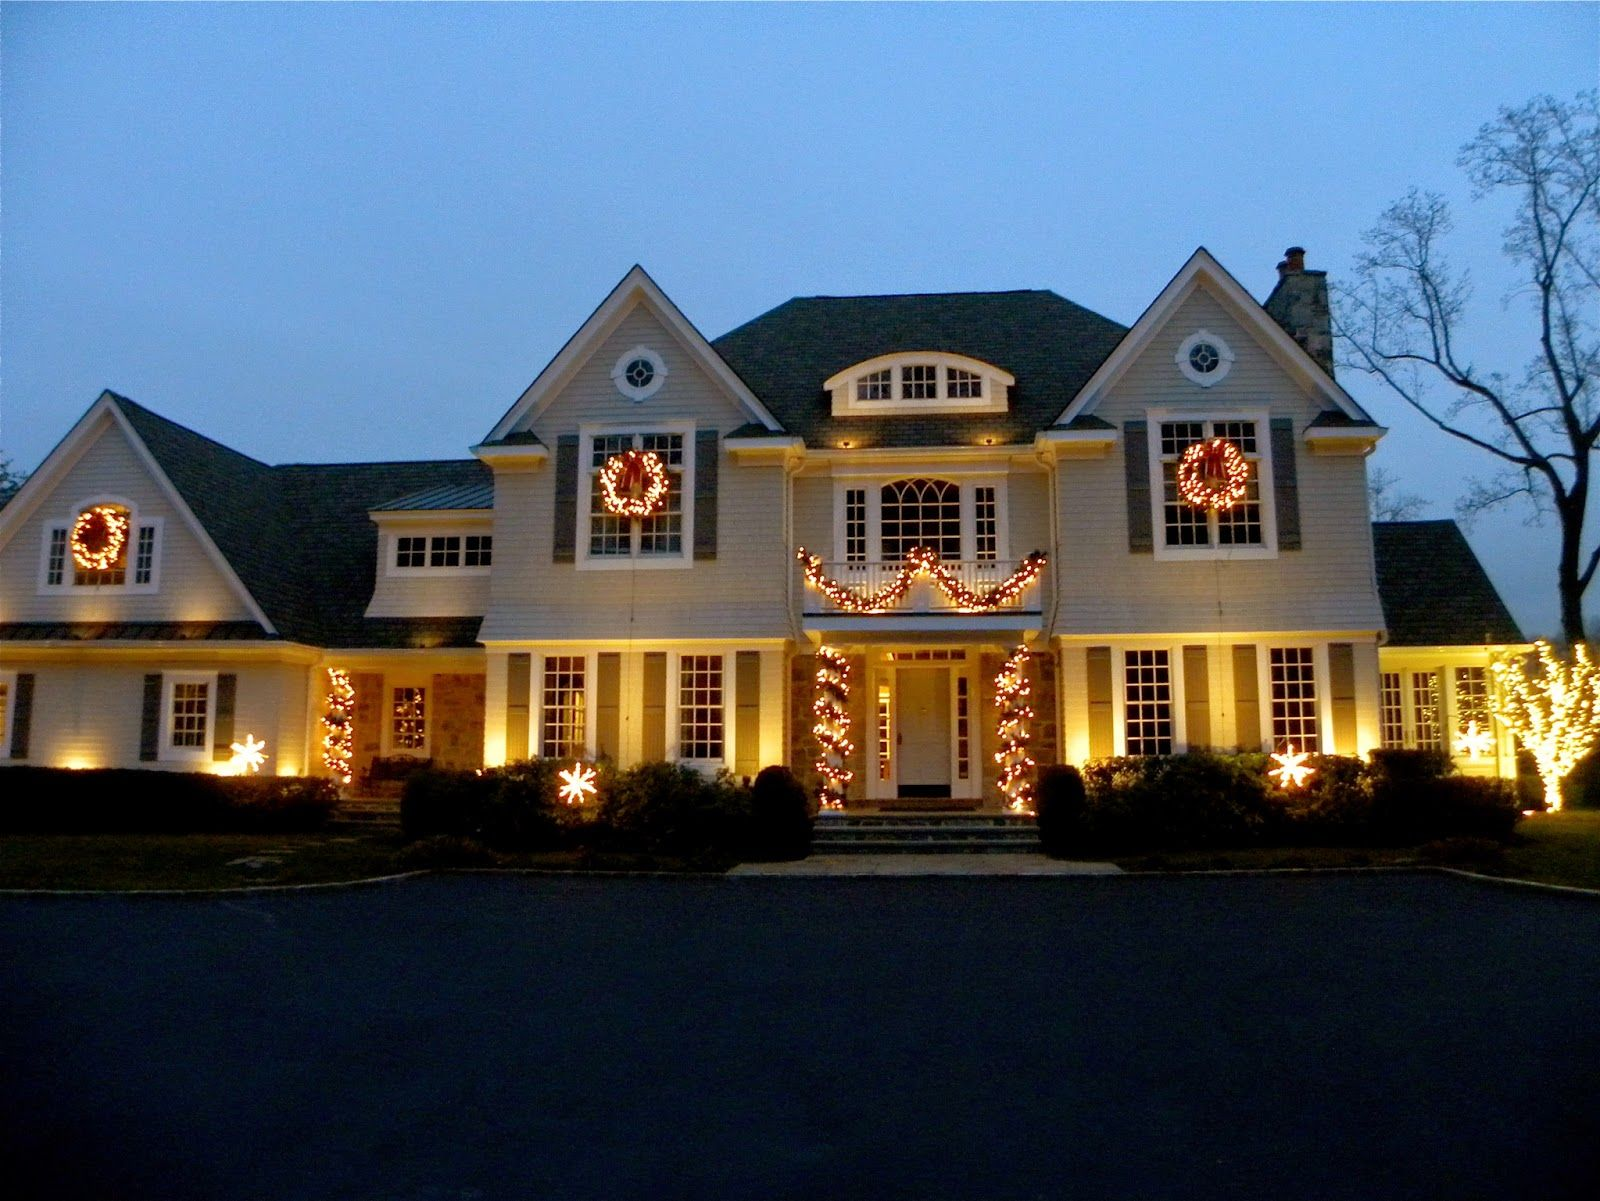 Simple Details Pretty Glow With Outdoor Spotlights Christmas Lights Outside Outdoor Christmas Lights Holiday Lights Outdoor